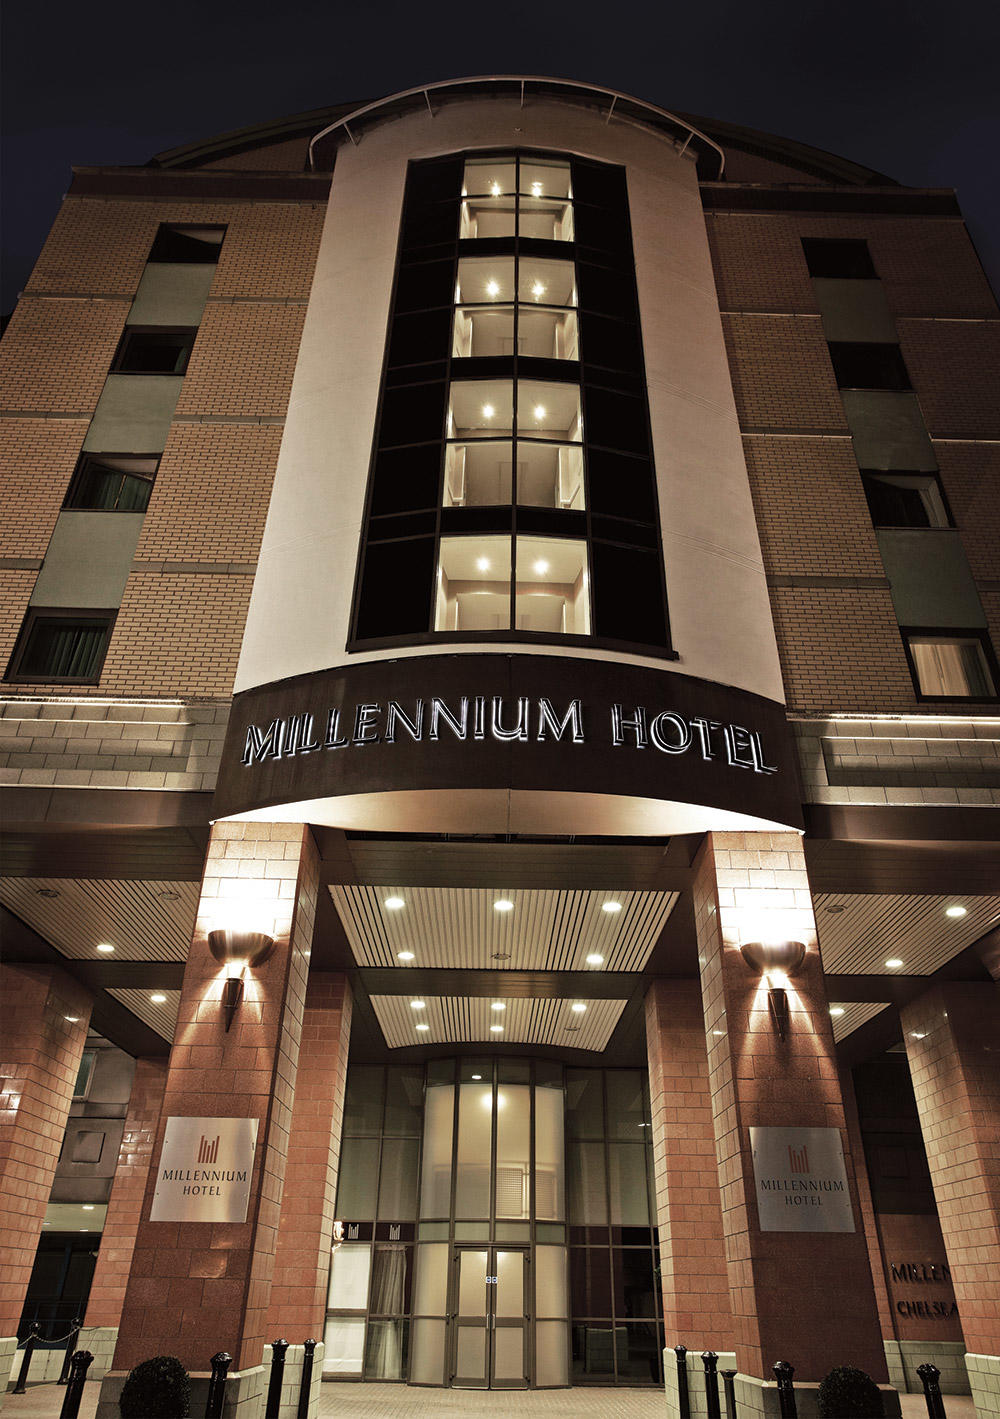 Hotel Millennium London